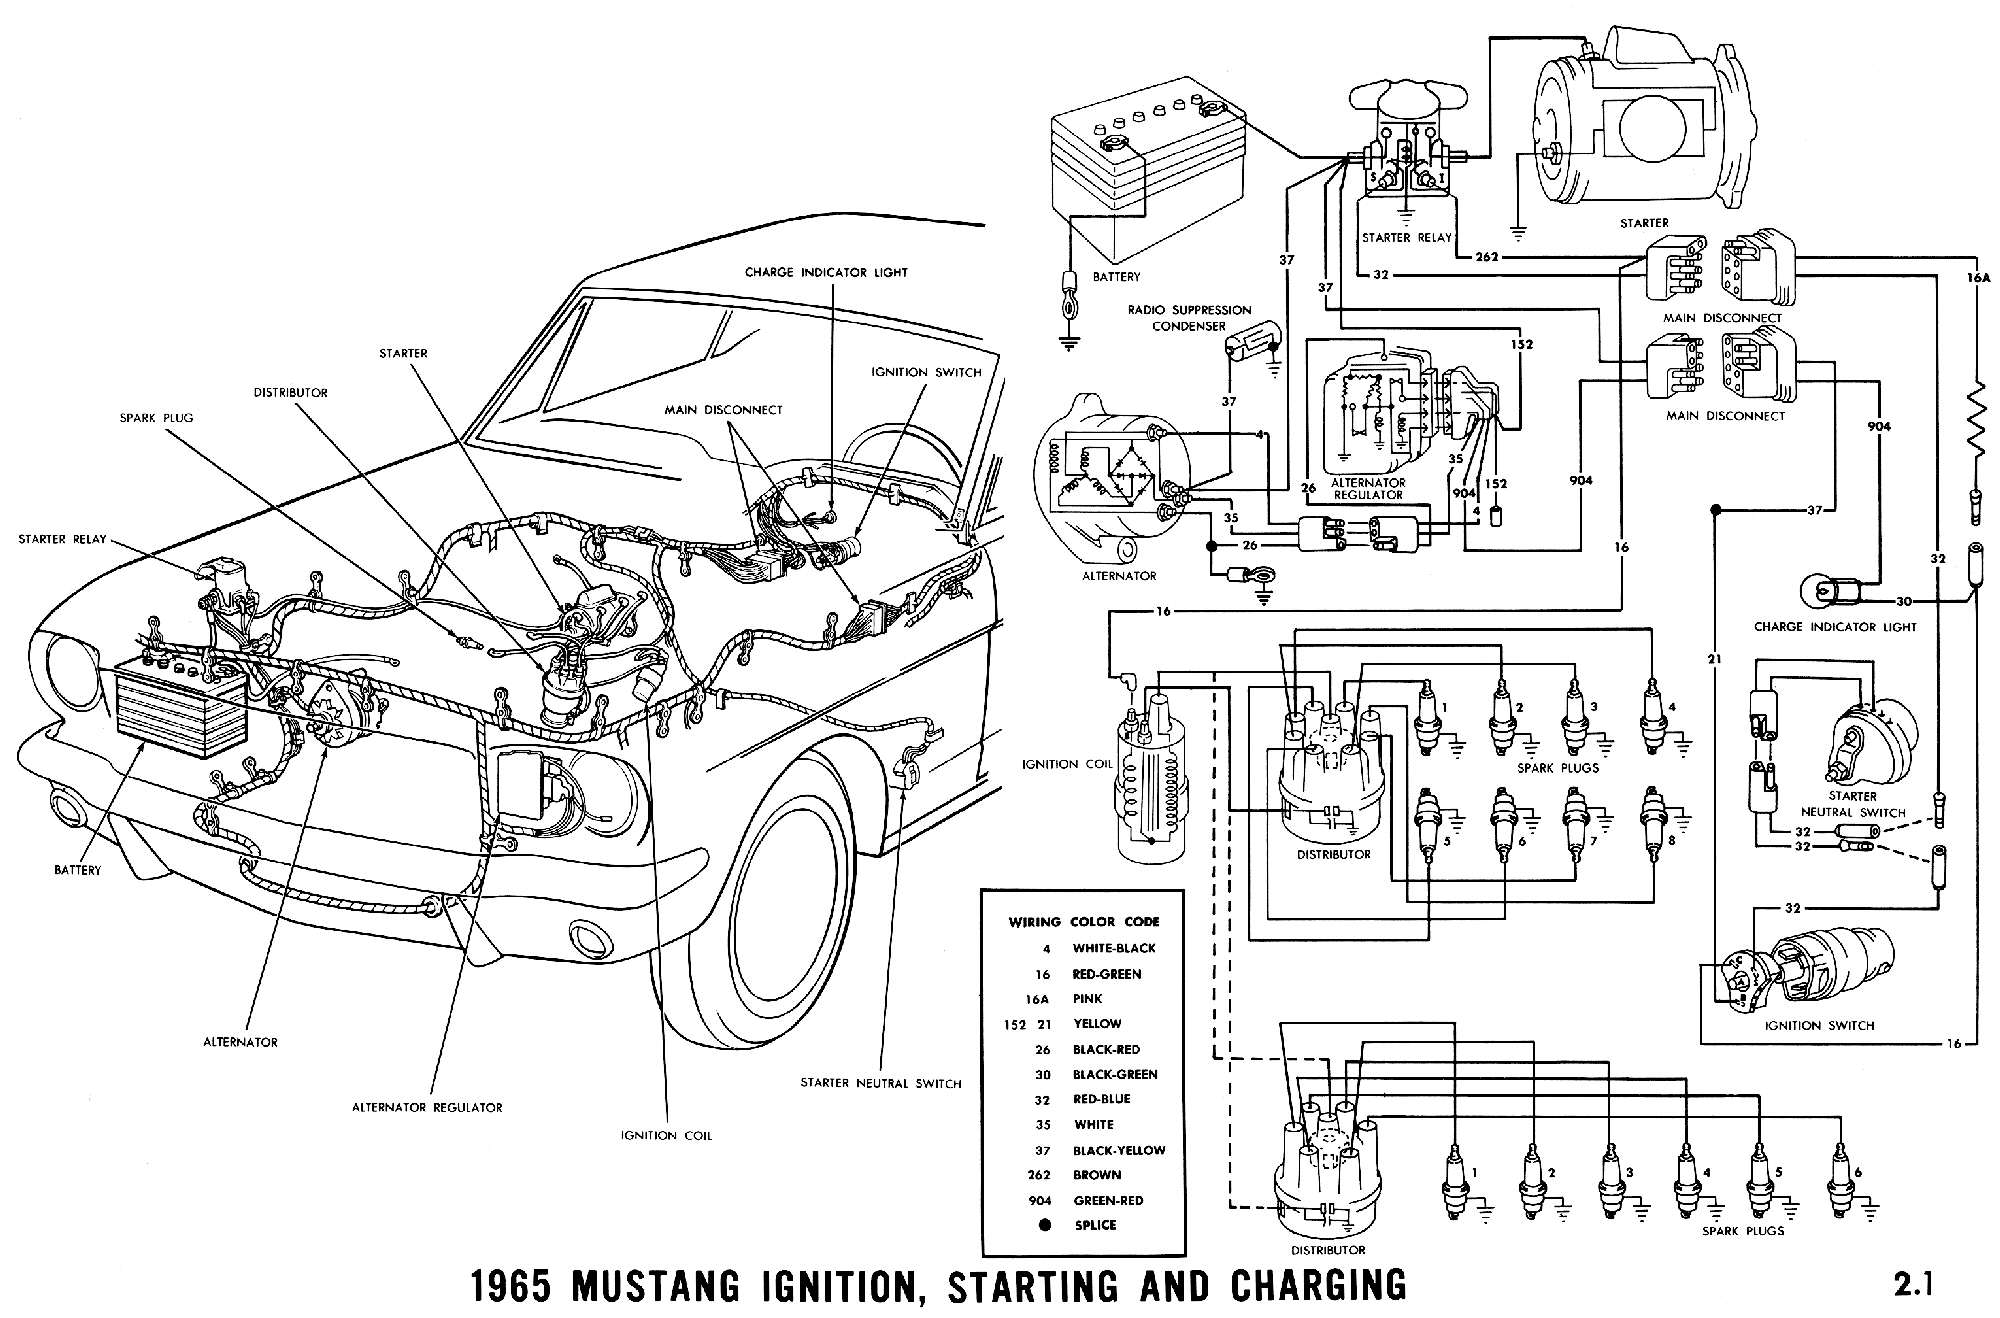 1965c 1965 mustang wiring diagrams average joe restoration ford 390 engine wiring diagram at eliteediting.co